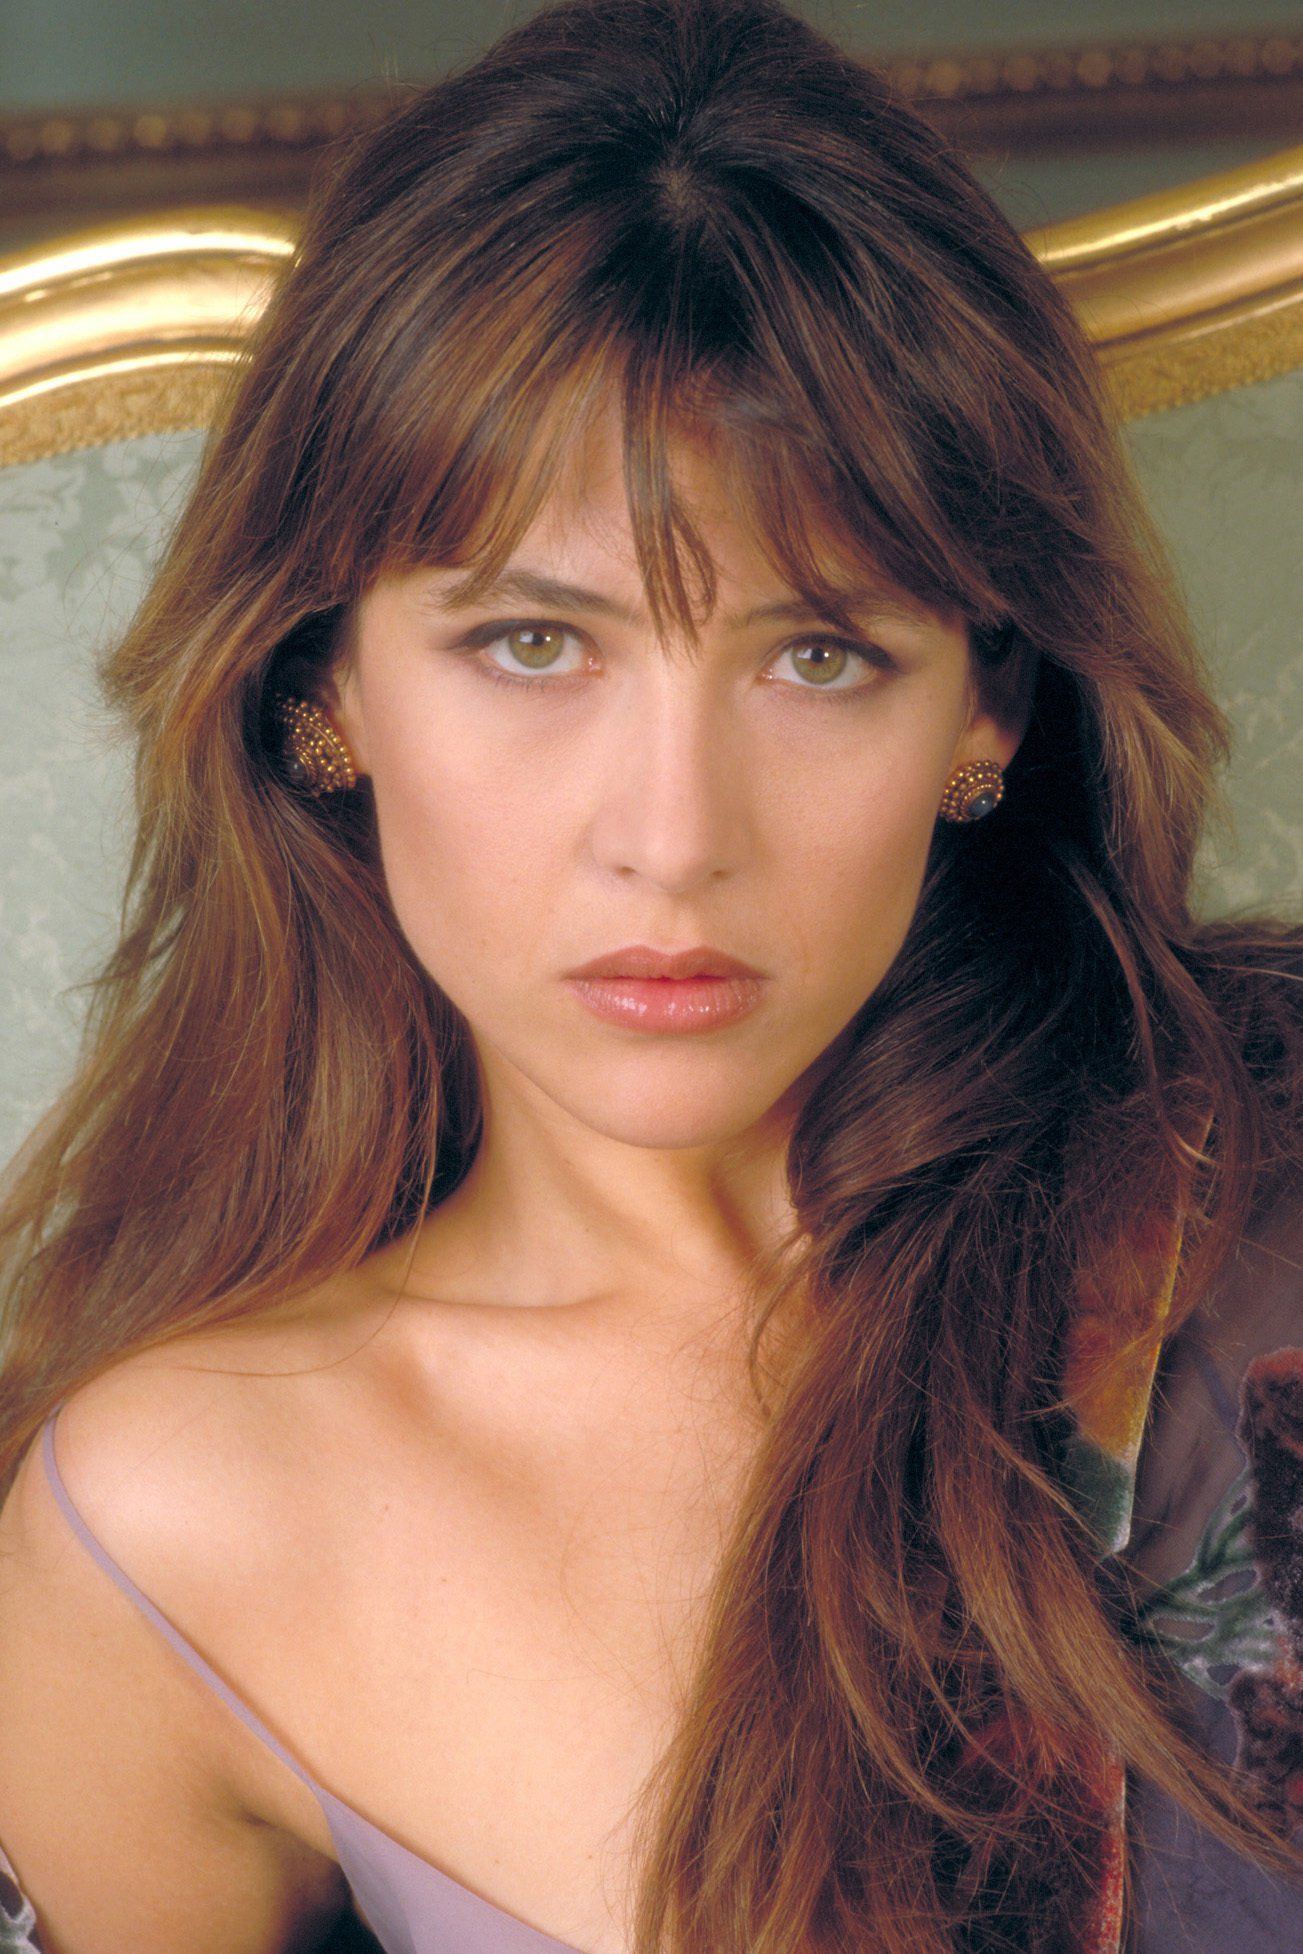 Cleavage Pics Sophie Marceau naked photo 2017